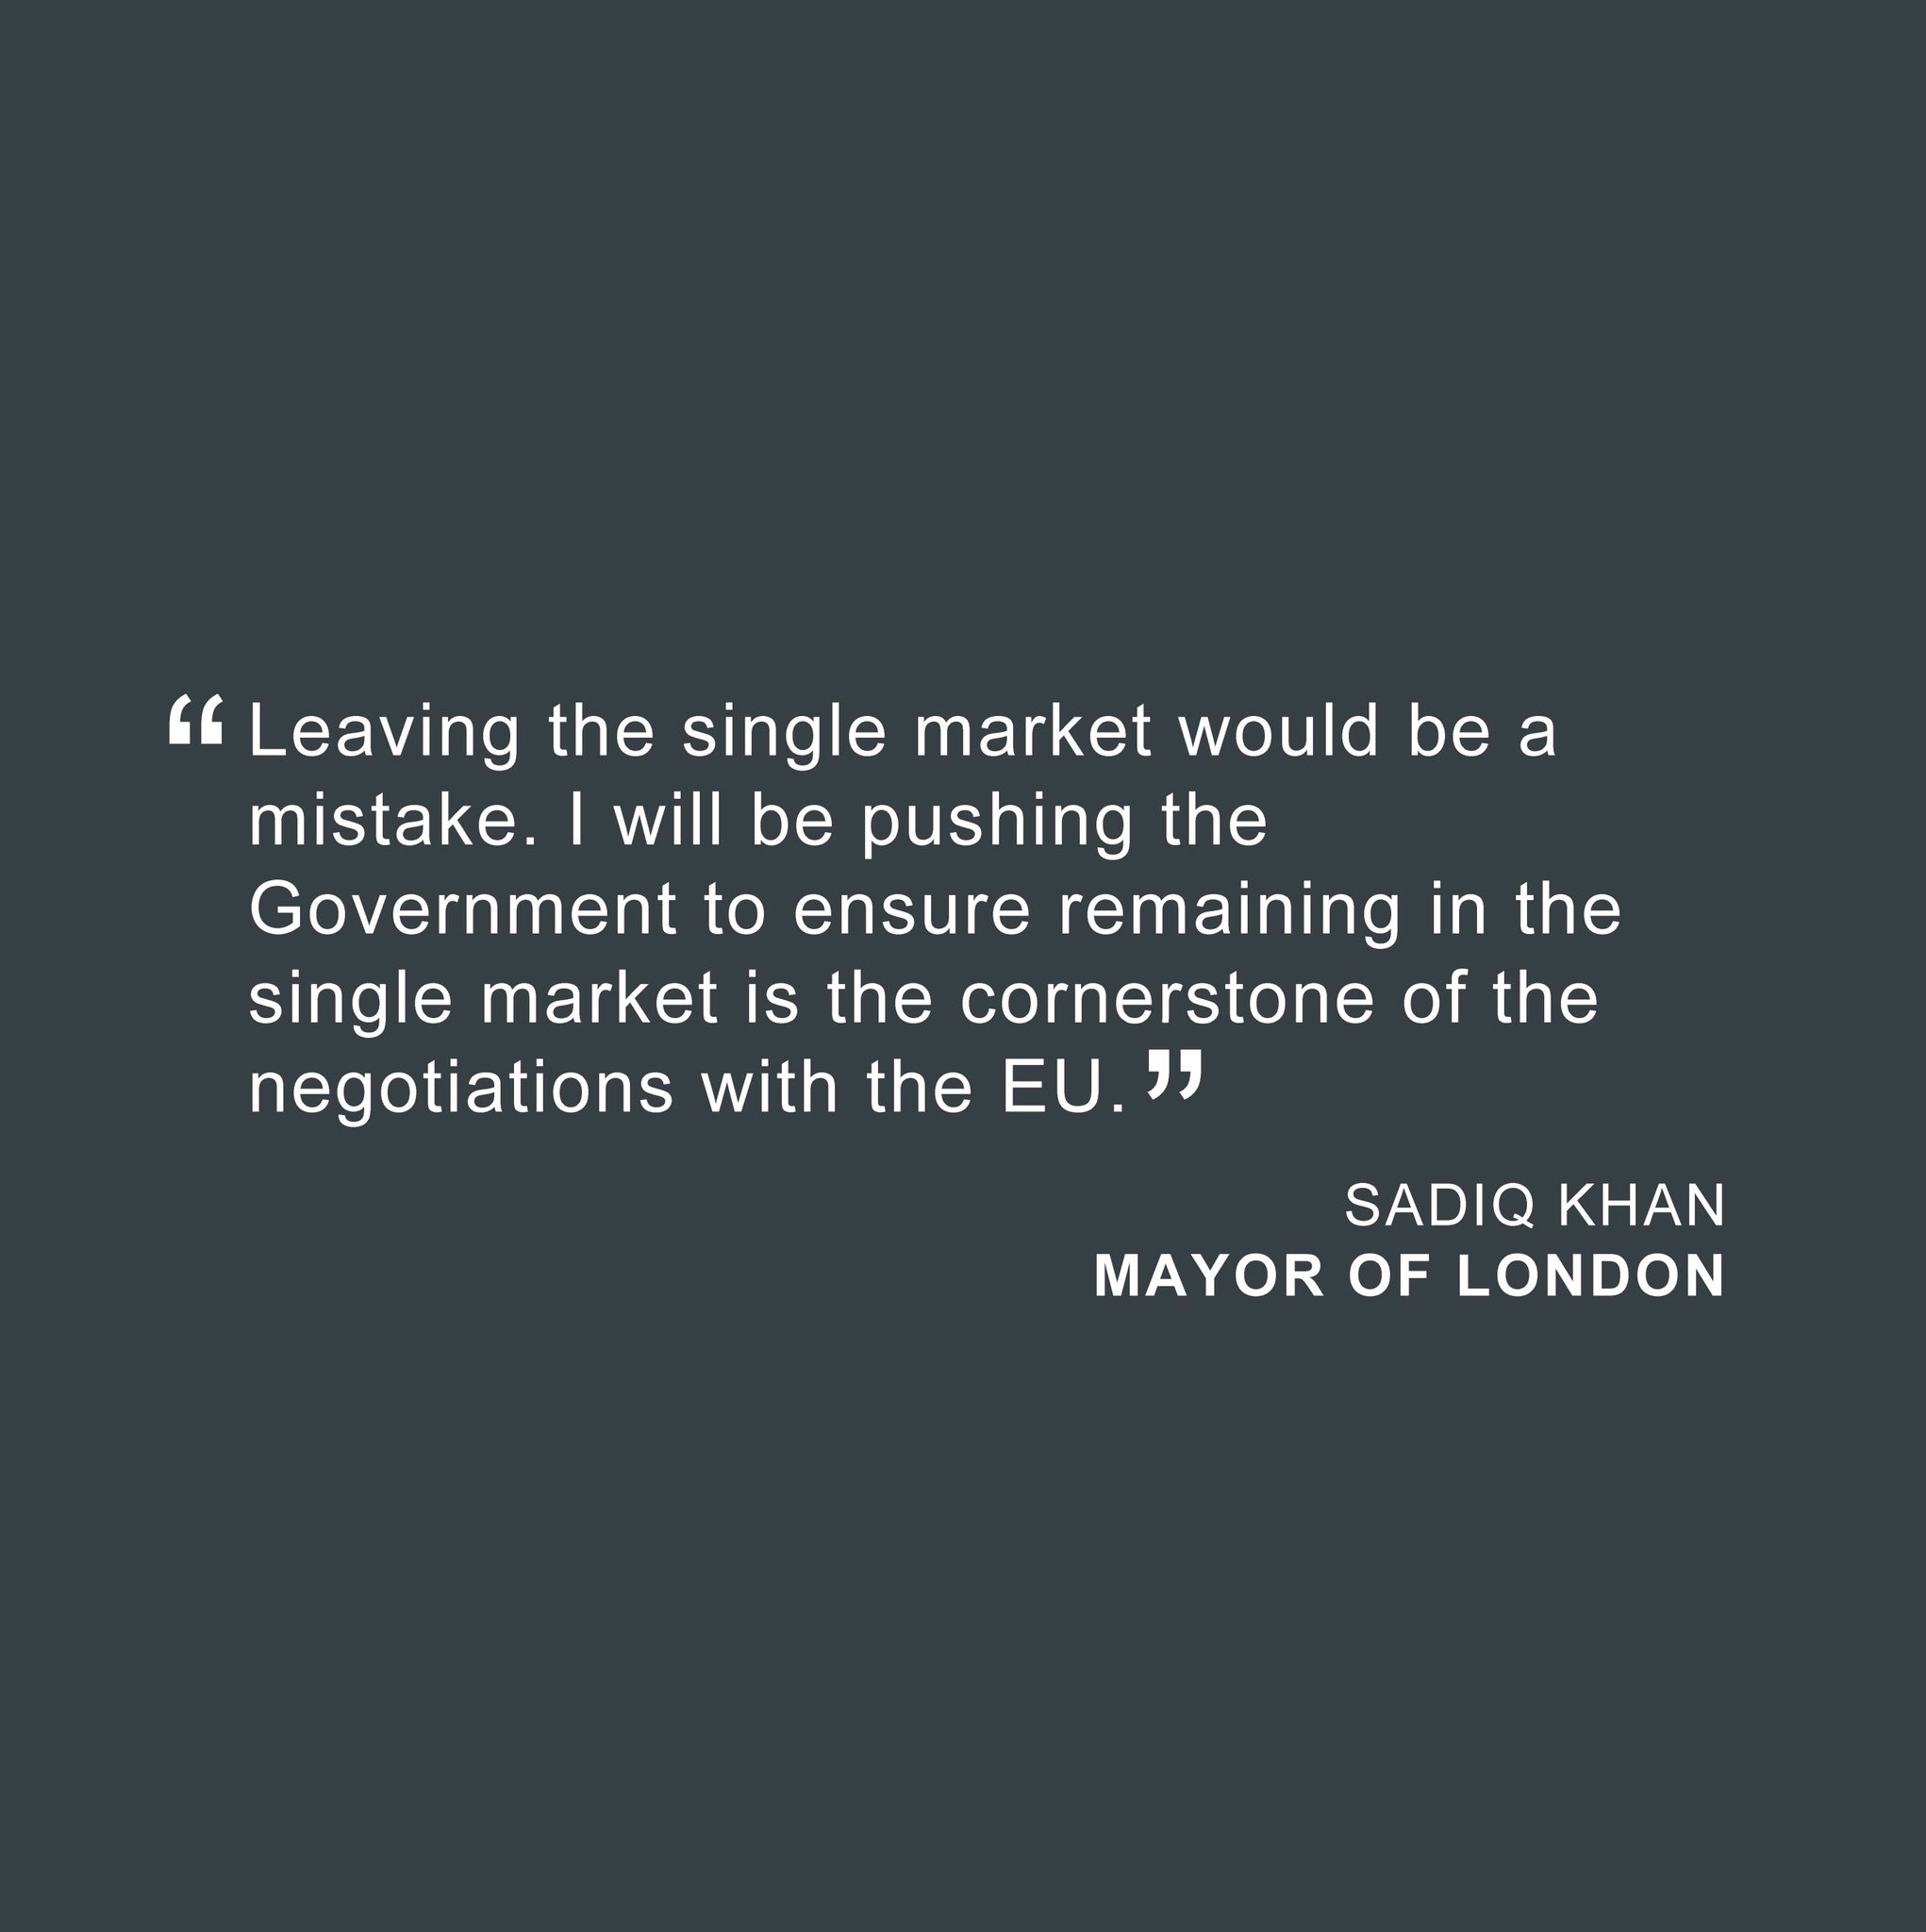 Britain simply must remain within the single market. London is united on this issue #LondonIsOpen https://t.co/wUn6t8oWvE